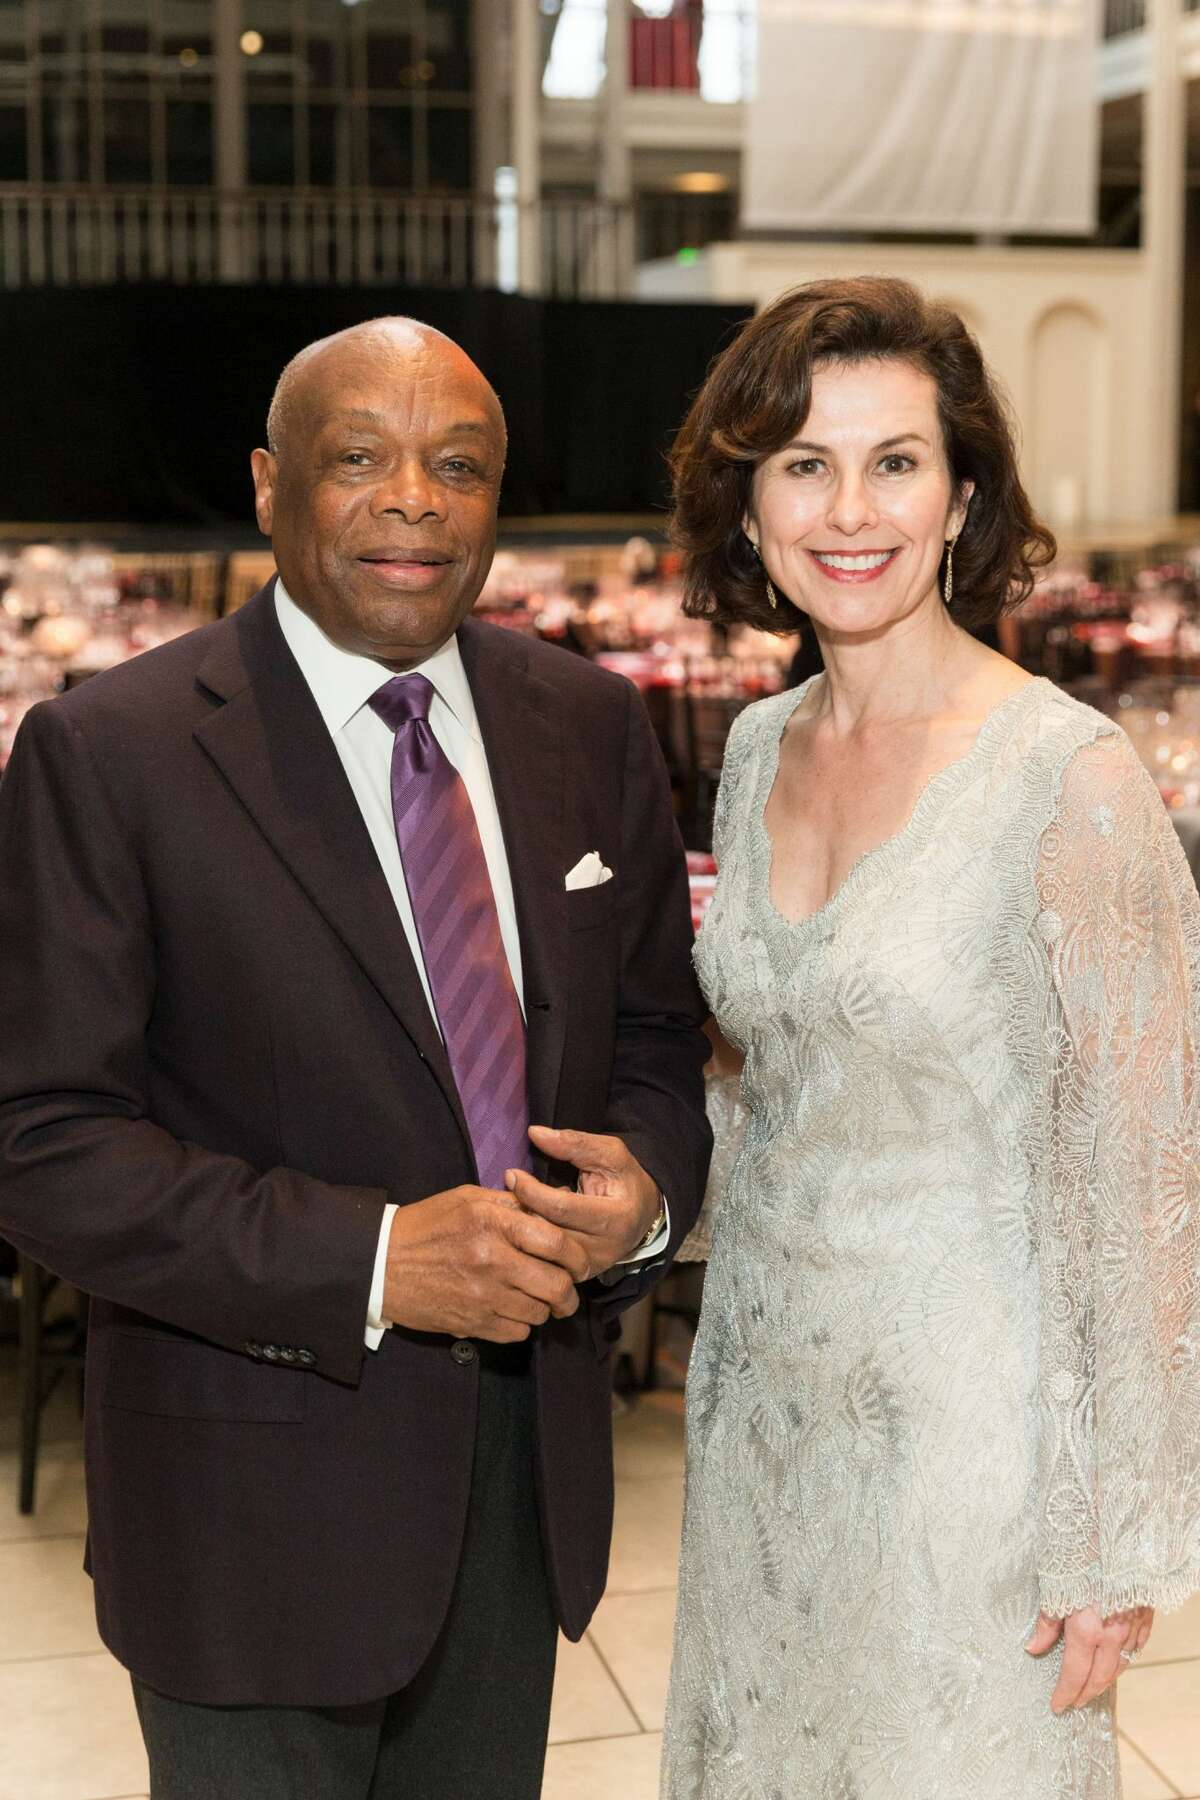 Former San Francisco Mayor Willie Brown and Smuin Artistic Director Celia Fushille at Smuin's Annual Gala held March 19, 2017 at The Galleria.